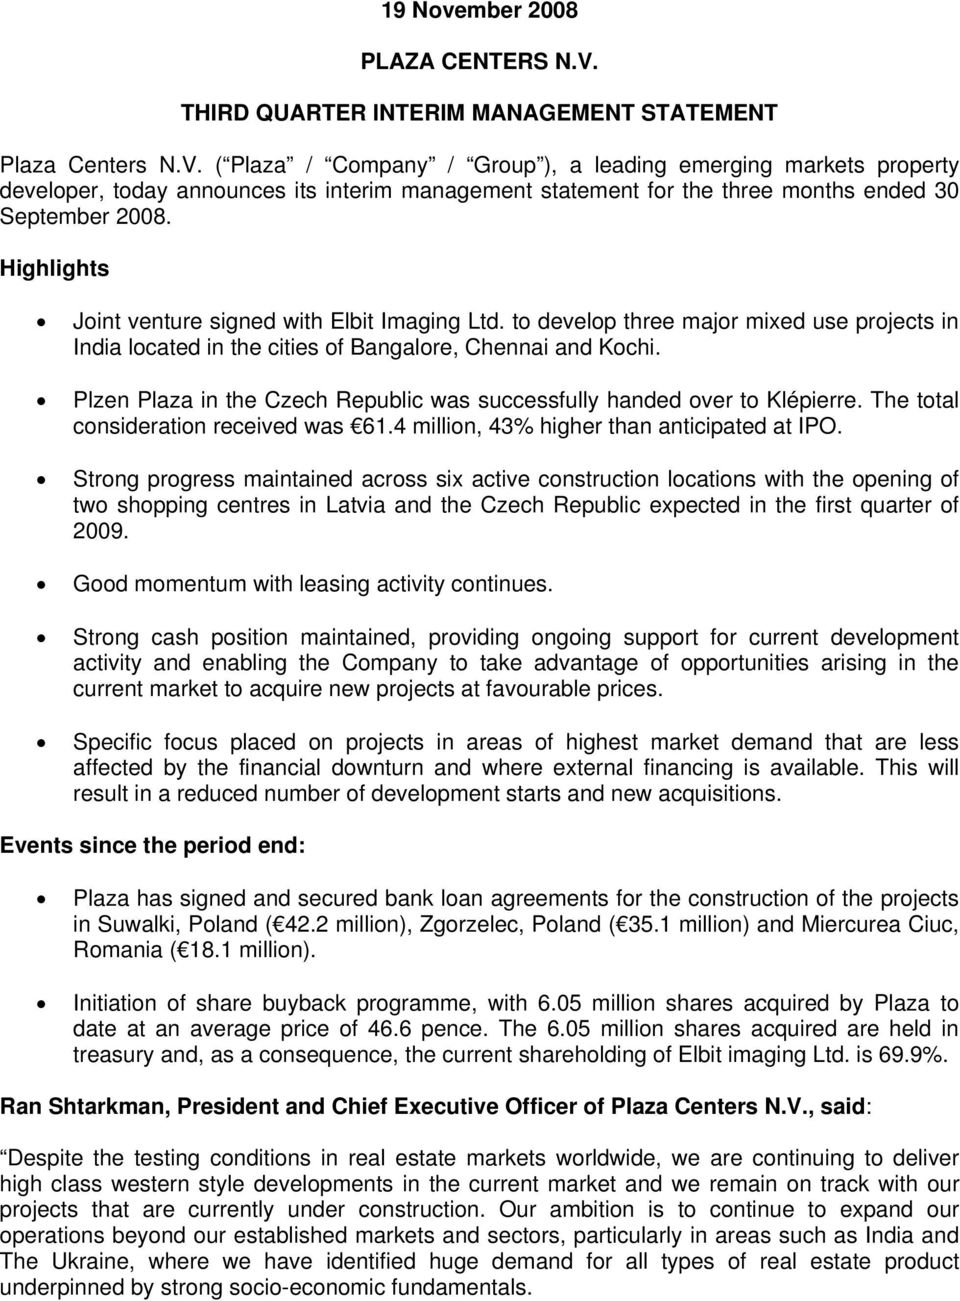 ( Plaza / Company / Group ), a leading emerging markets property developer, today announces its interim management statement for the three months ended 30 September 2008.